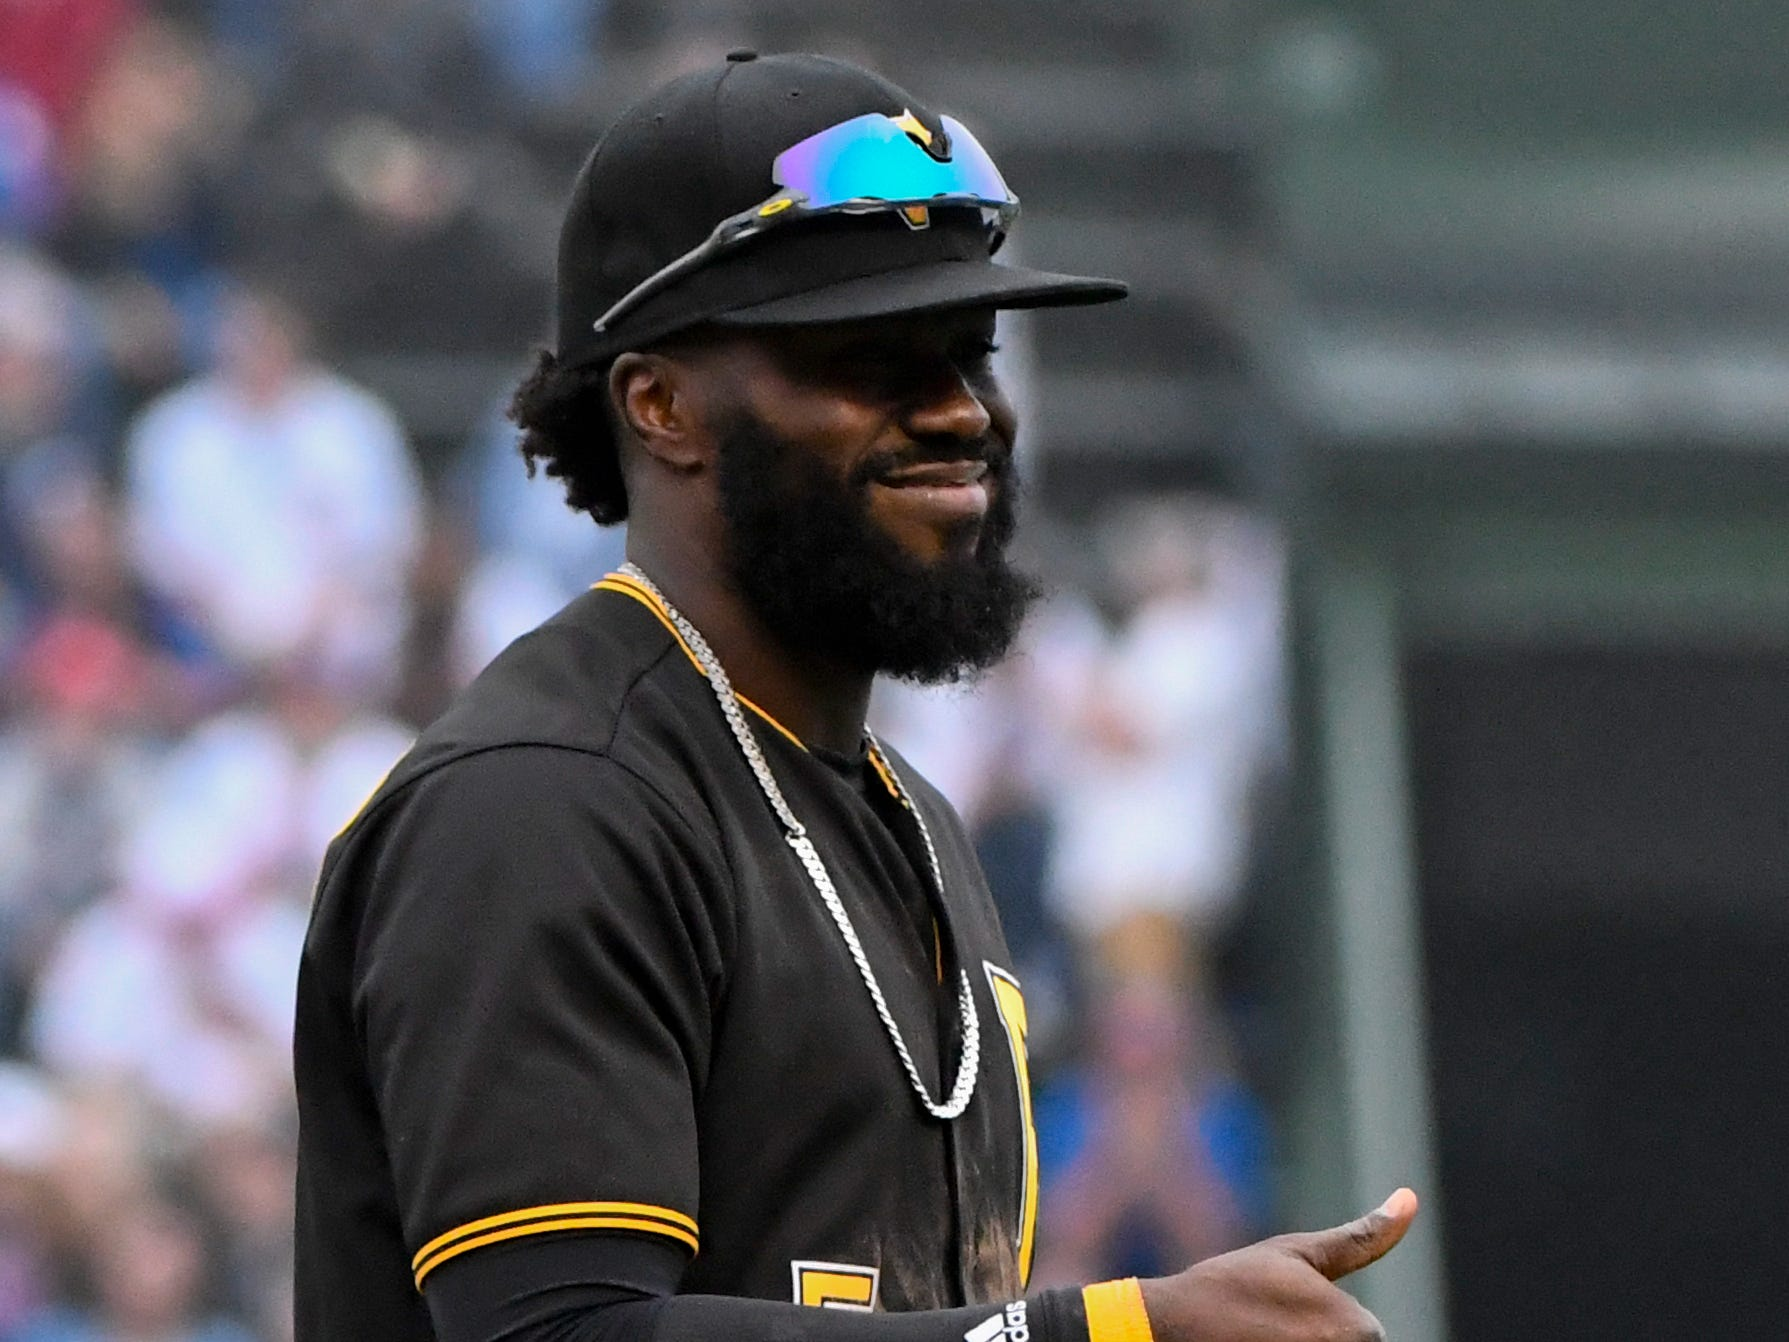 Pittsburgh Pirates second baseman Josh Harrison reacts after he stops a ball hit by Chicago Cubs' Anthony Rizzo during the ninth inning of a baseball game on Sunday, June 10, 2018, in Chicago.